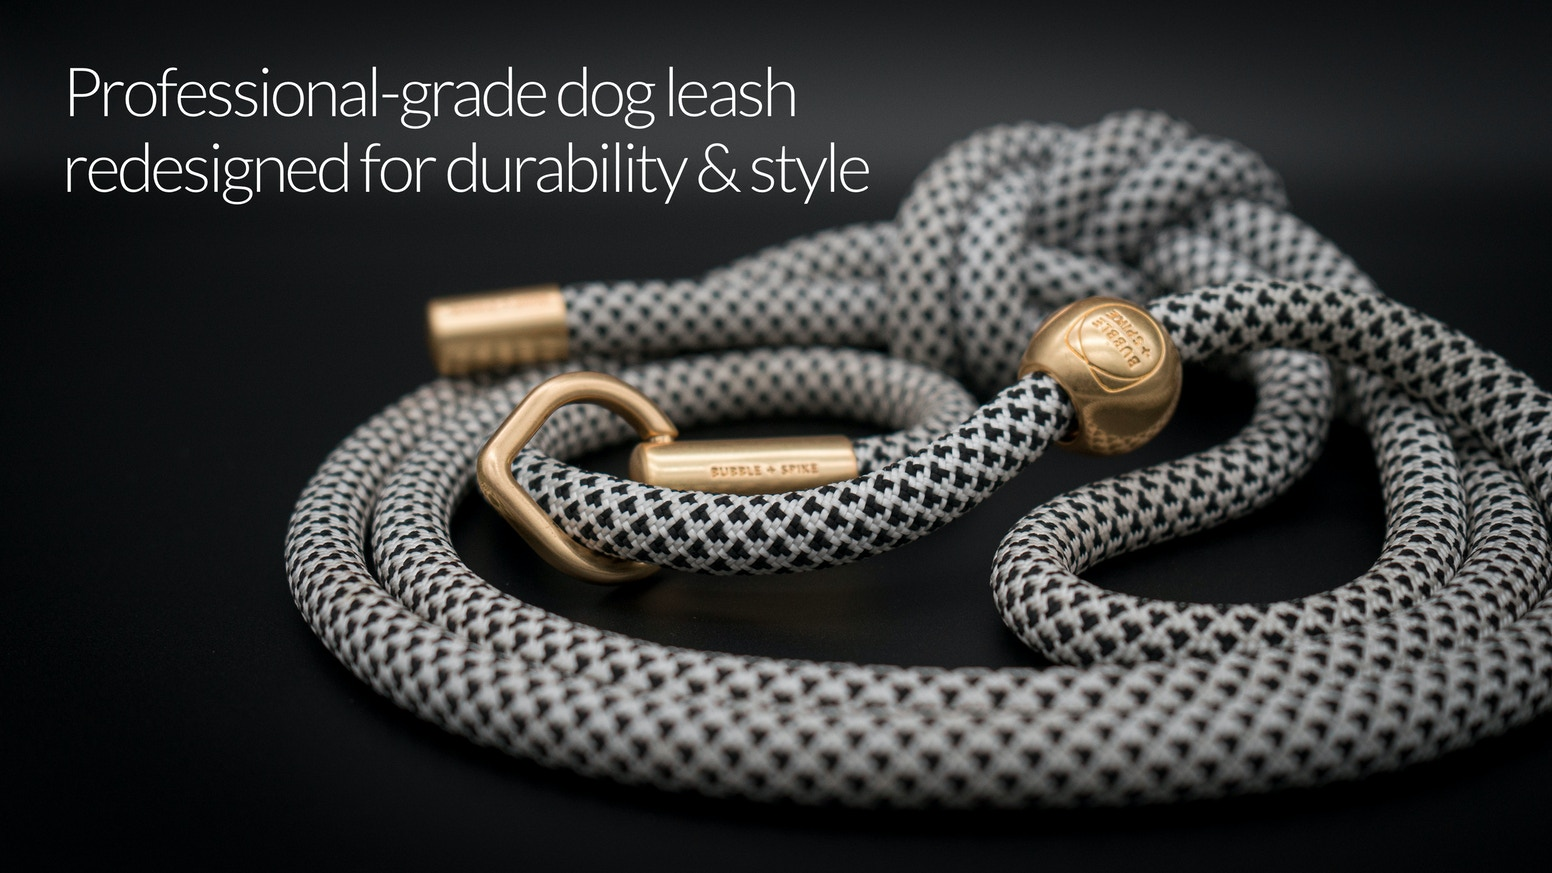 A professional-grade dog training leash, redesigned for durability & style.